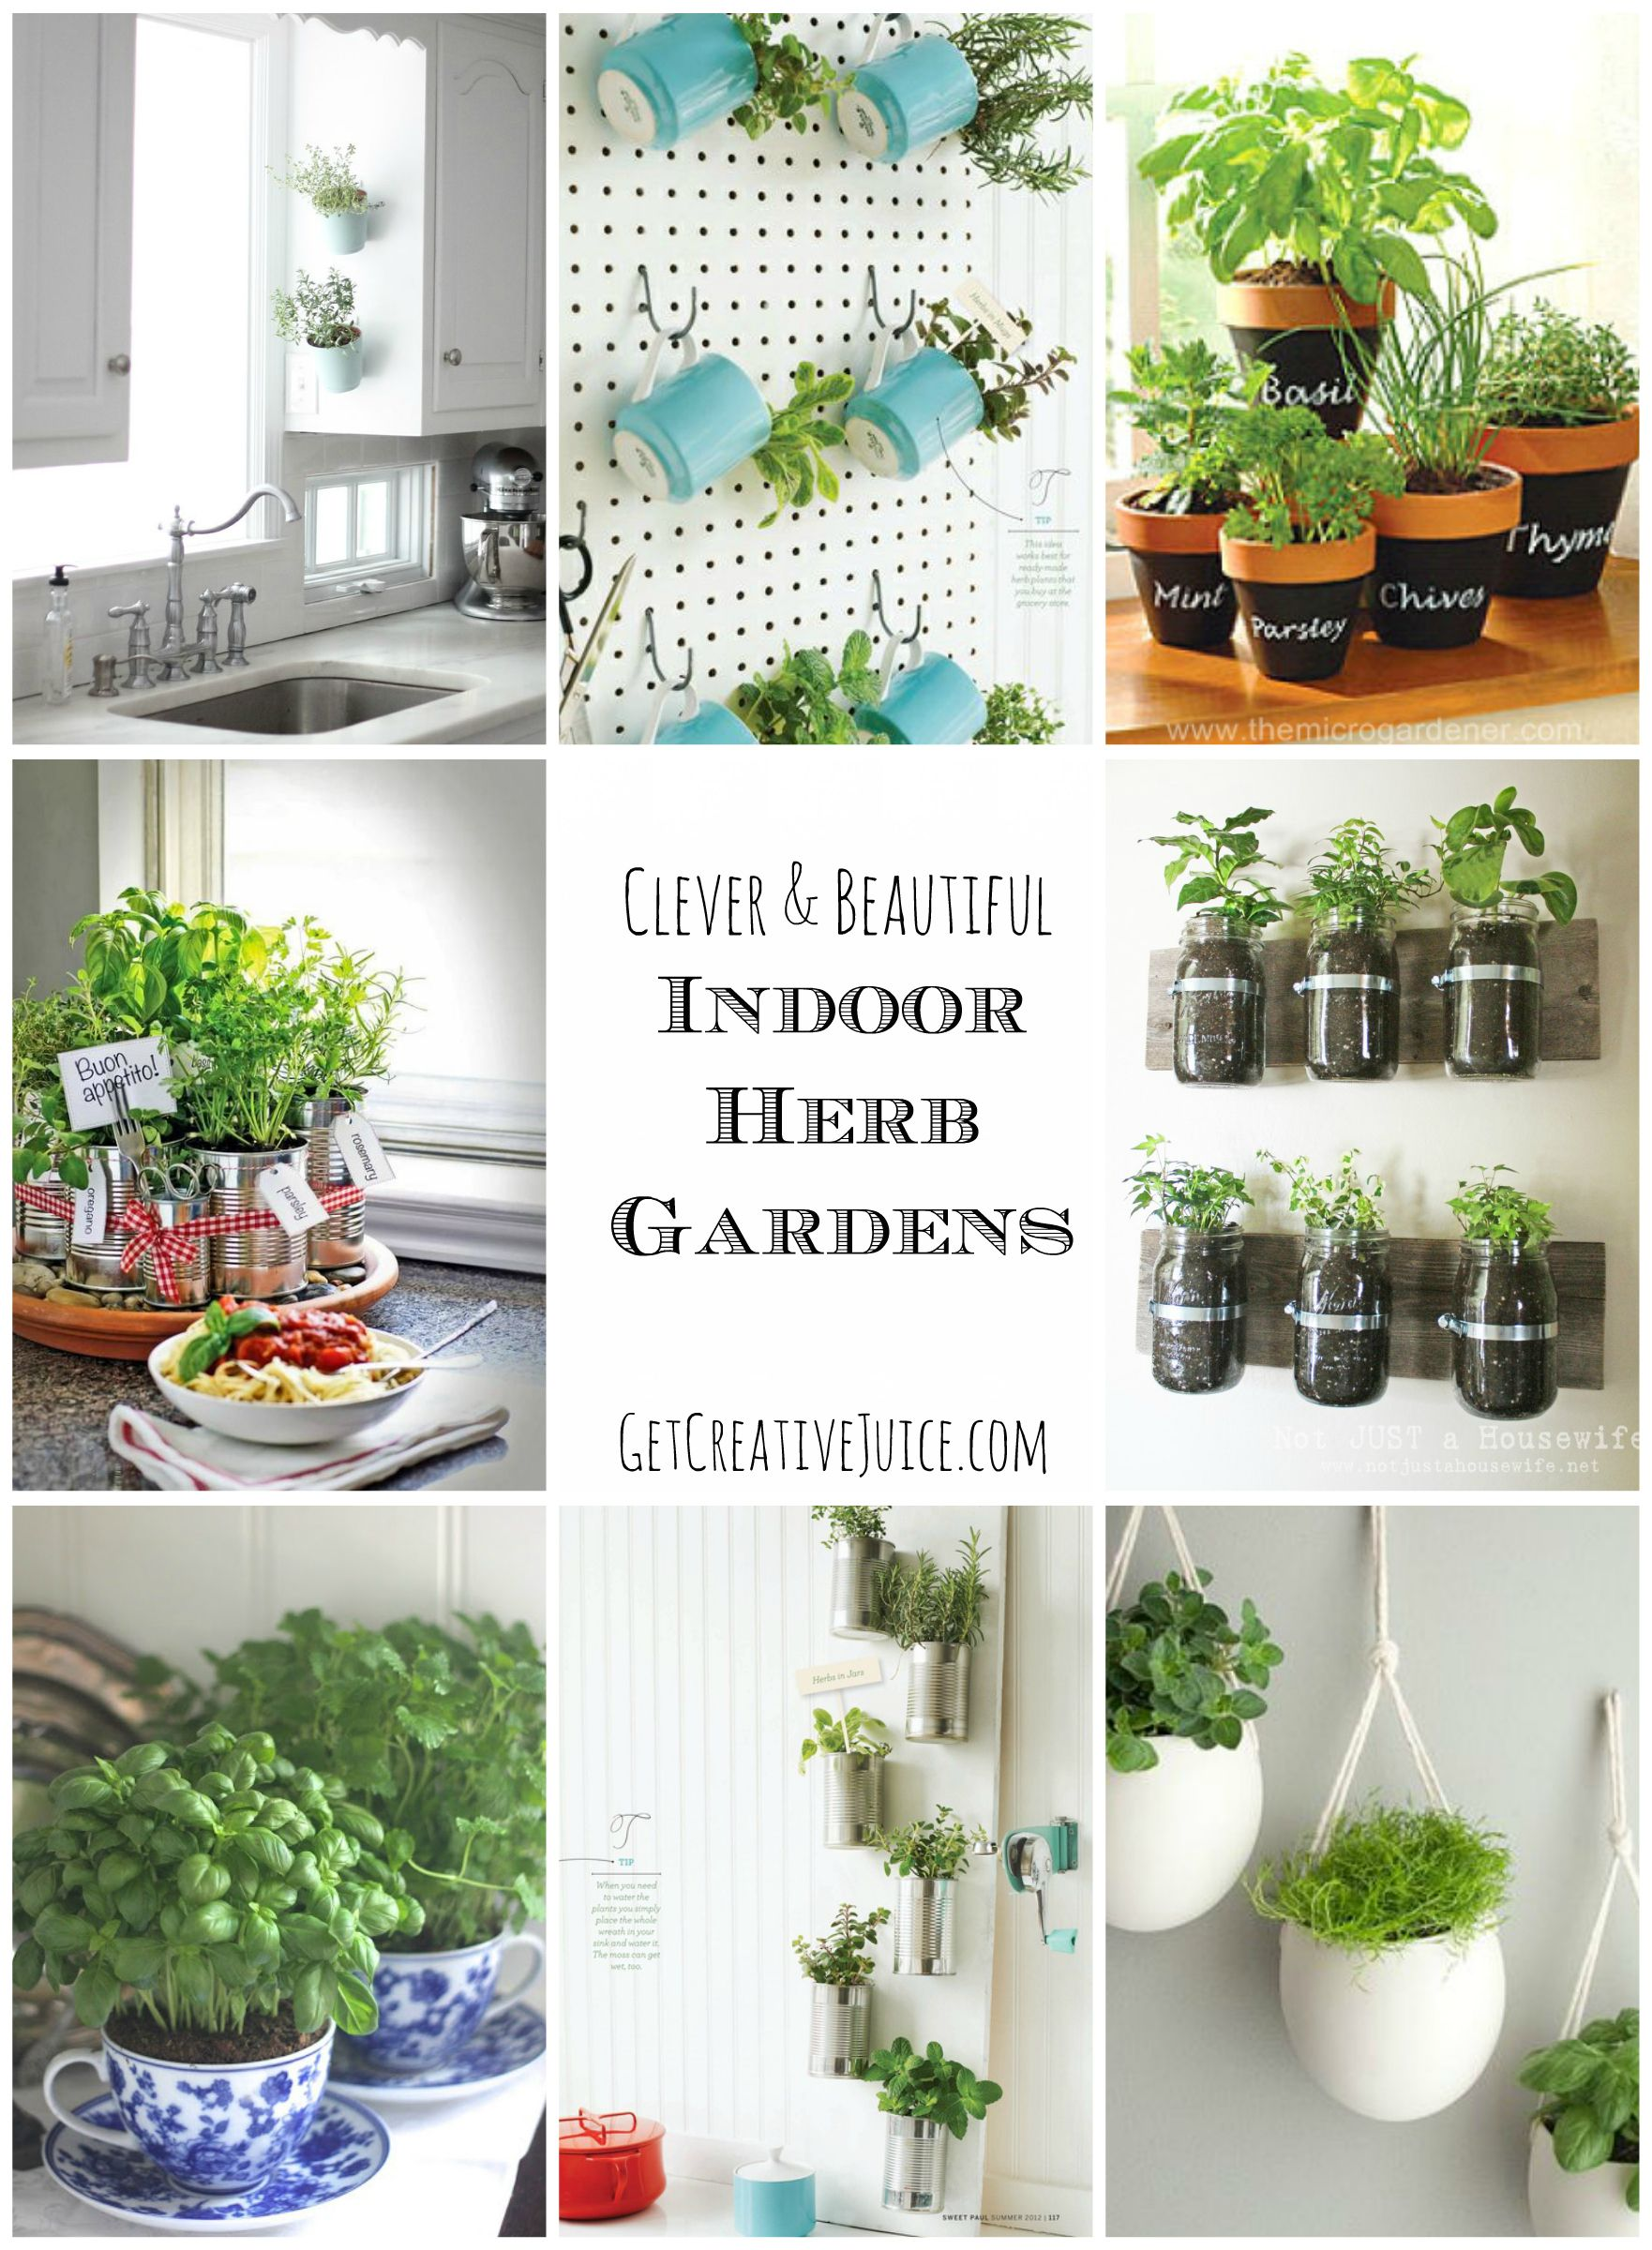 Hydroponic Kitchen Herb Garden Indoor Herb Garden Ideas Creative Beautiful And Easy Ideas For